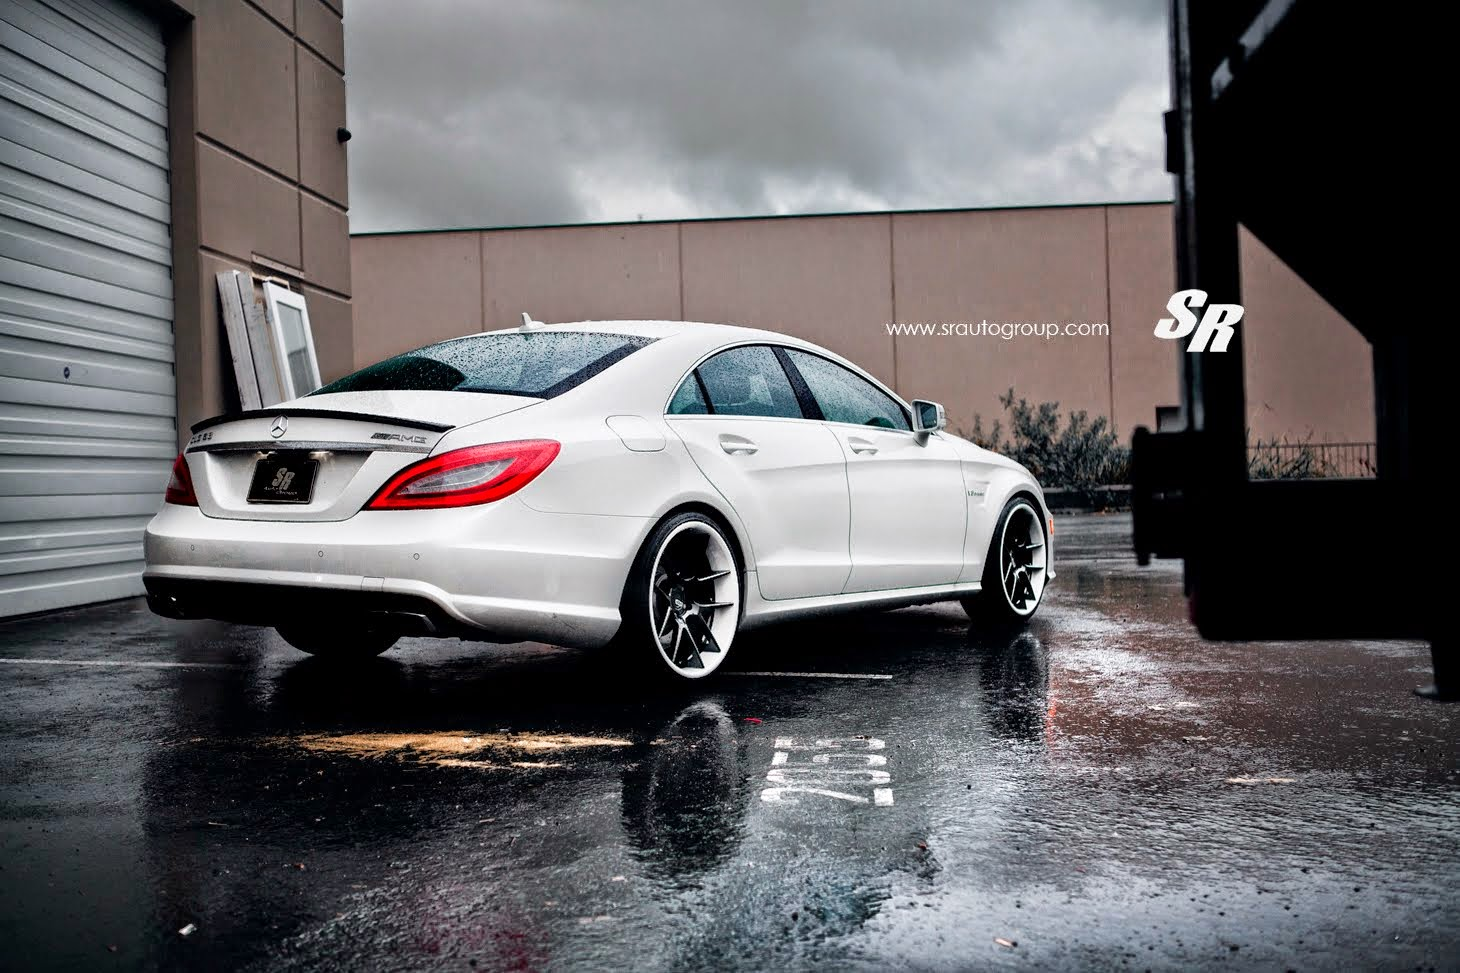 cls63 amg white